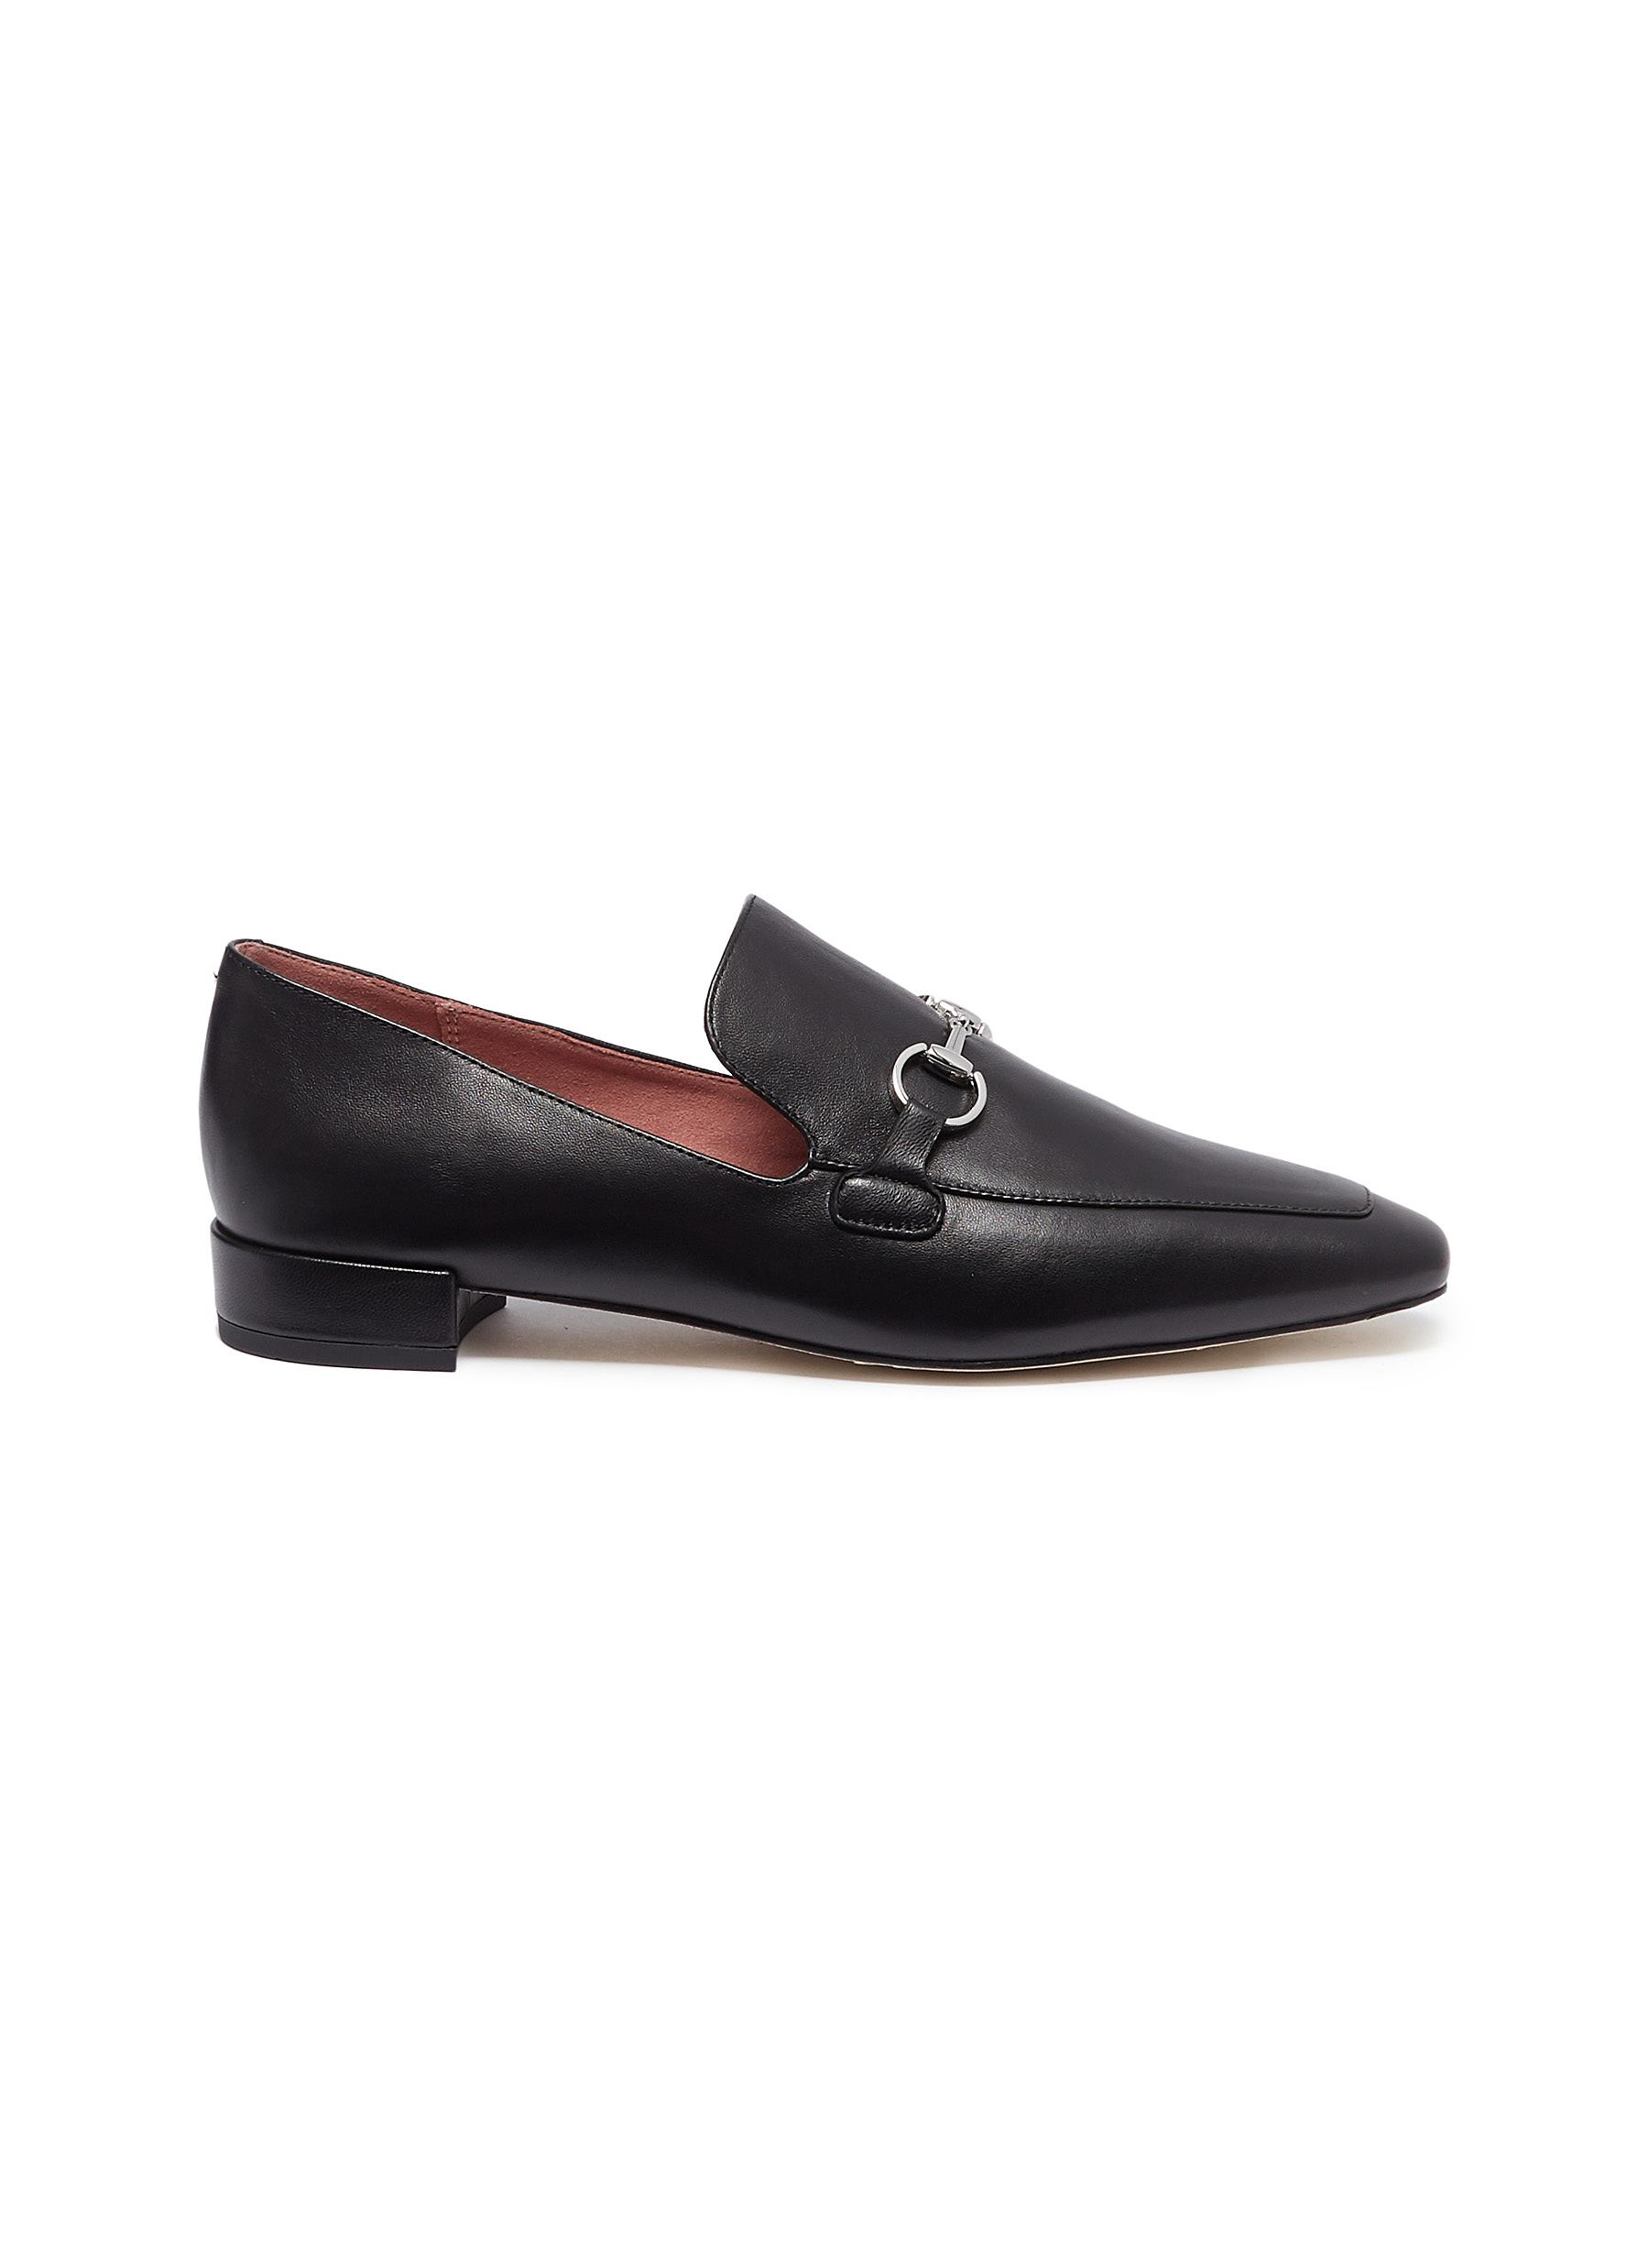 Zack horsebit leather loafers by Pedder Red